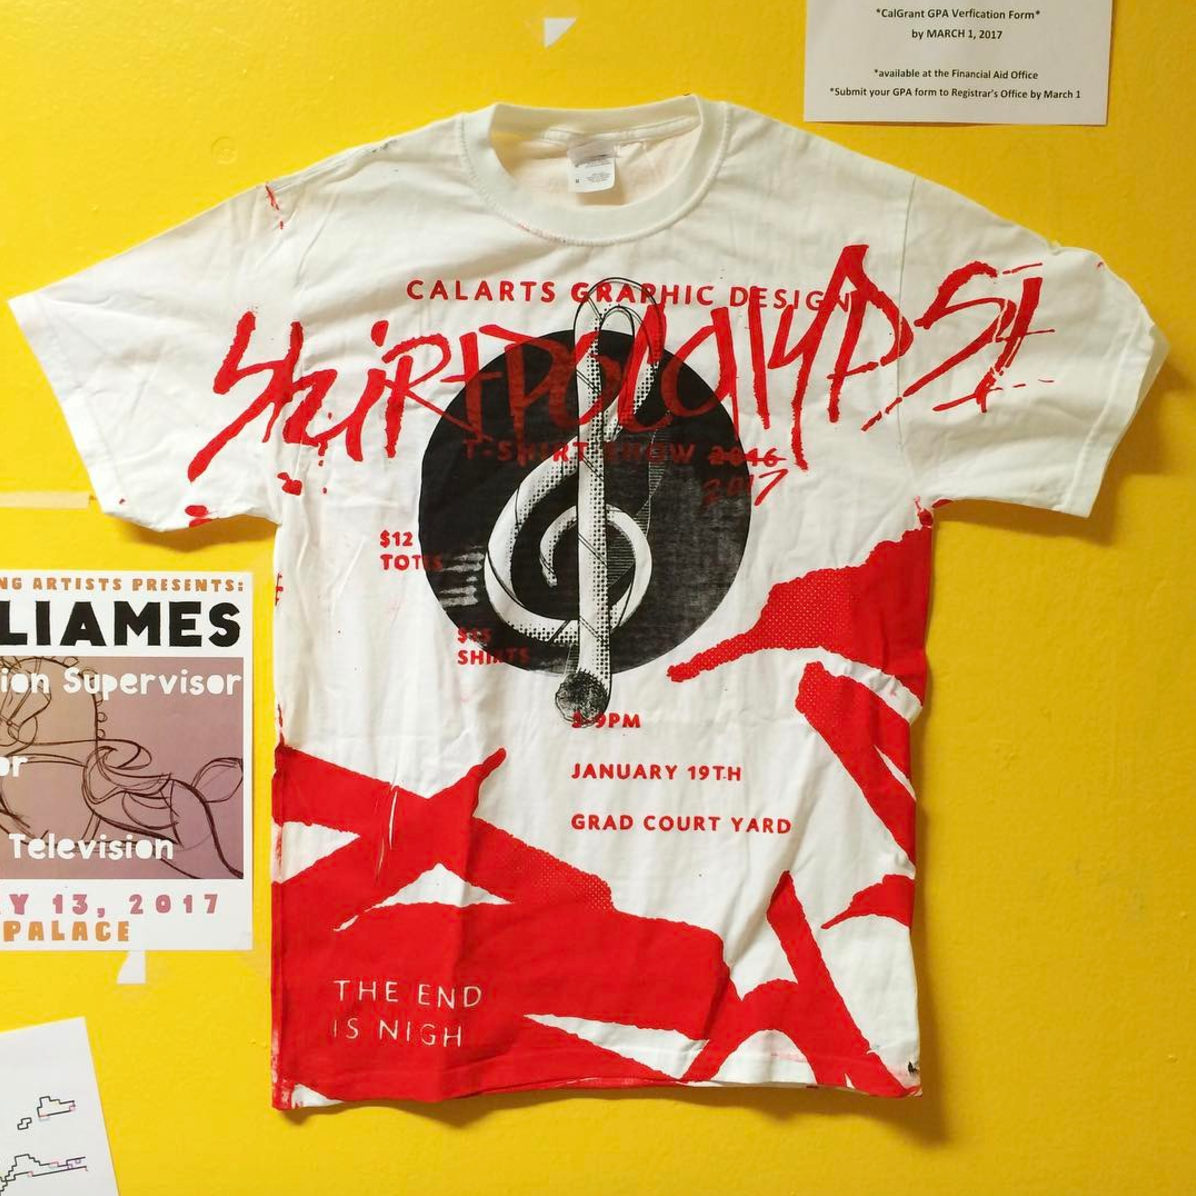 Graphic design program s t shirt show goes apocalyptic for Graphic t shirt designs